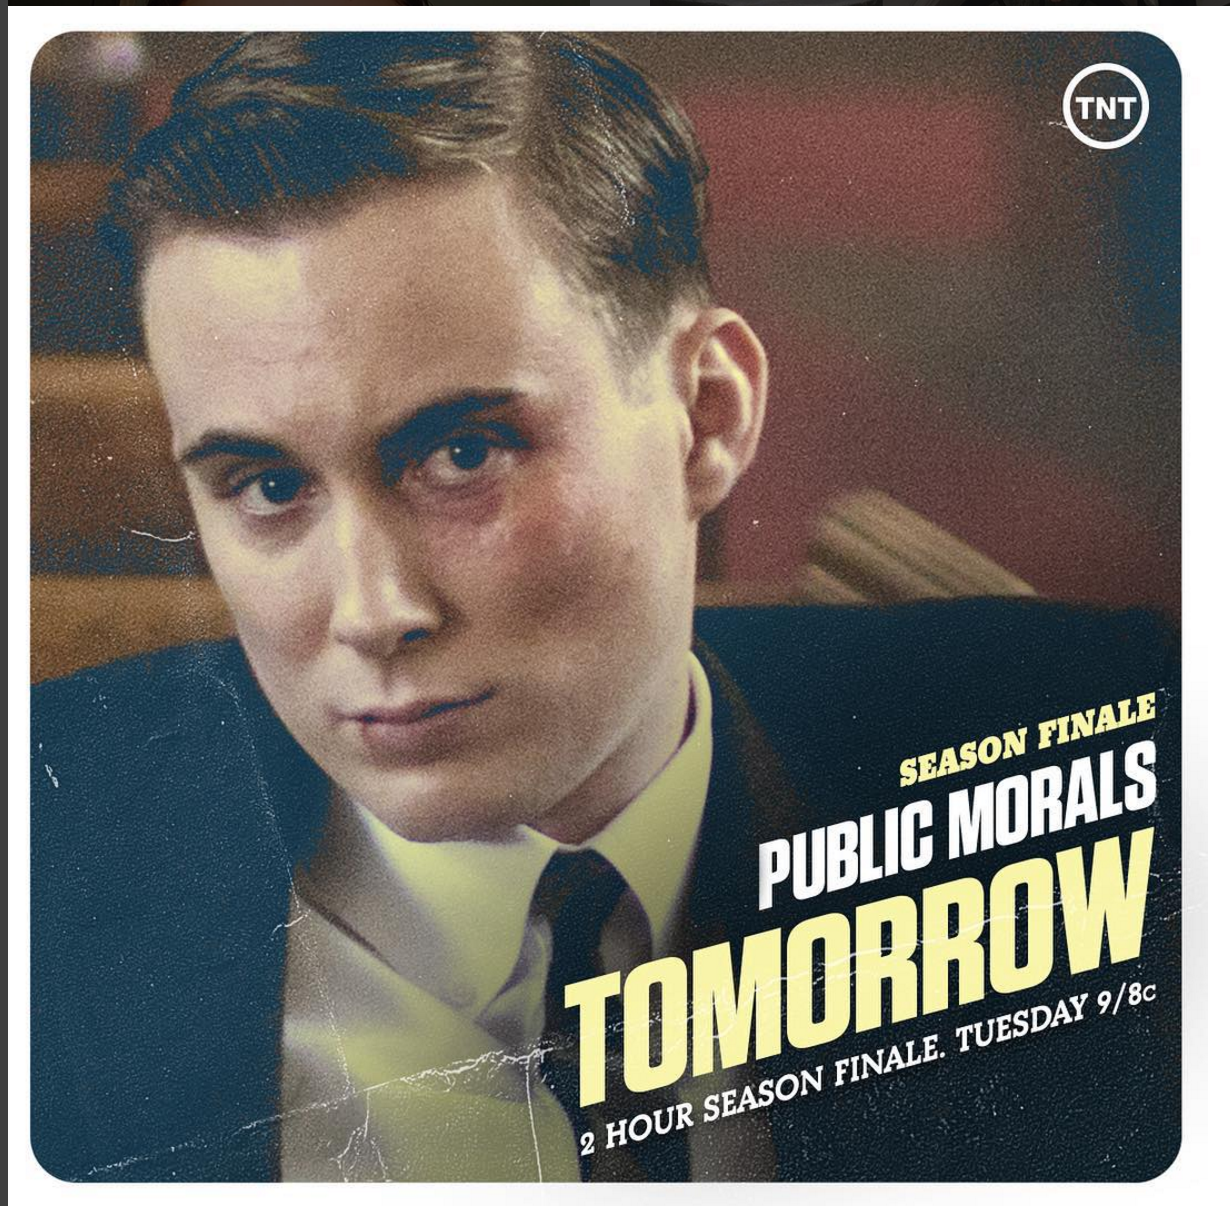 Brian as Jimmy Shea in TNT's  Public Morals